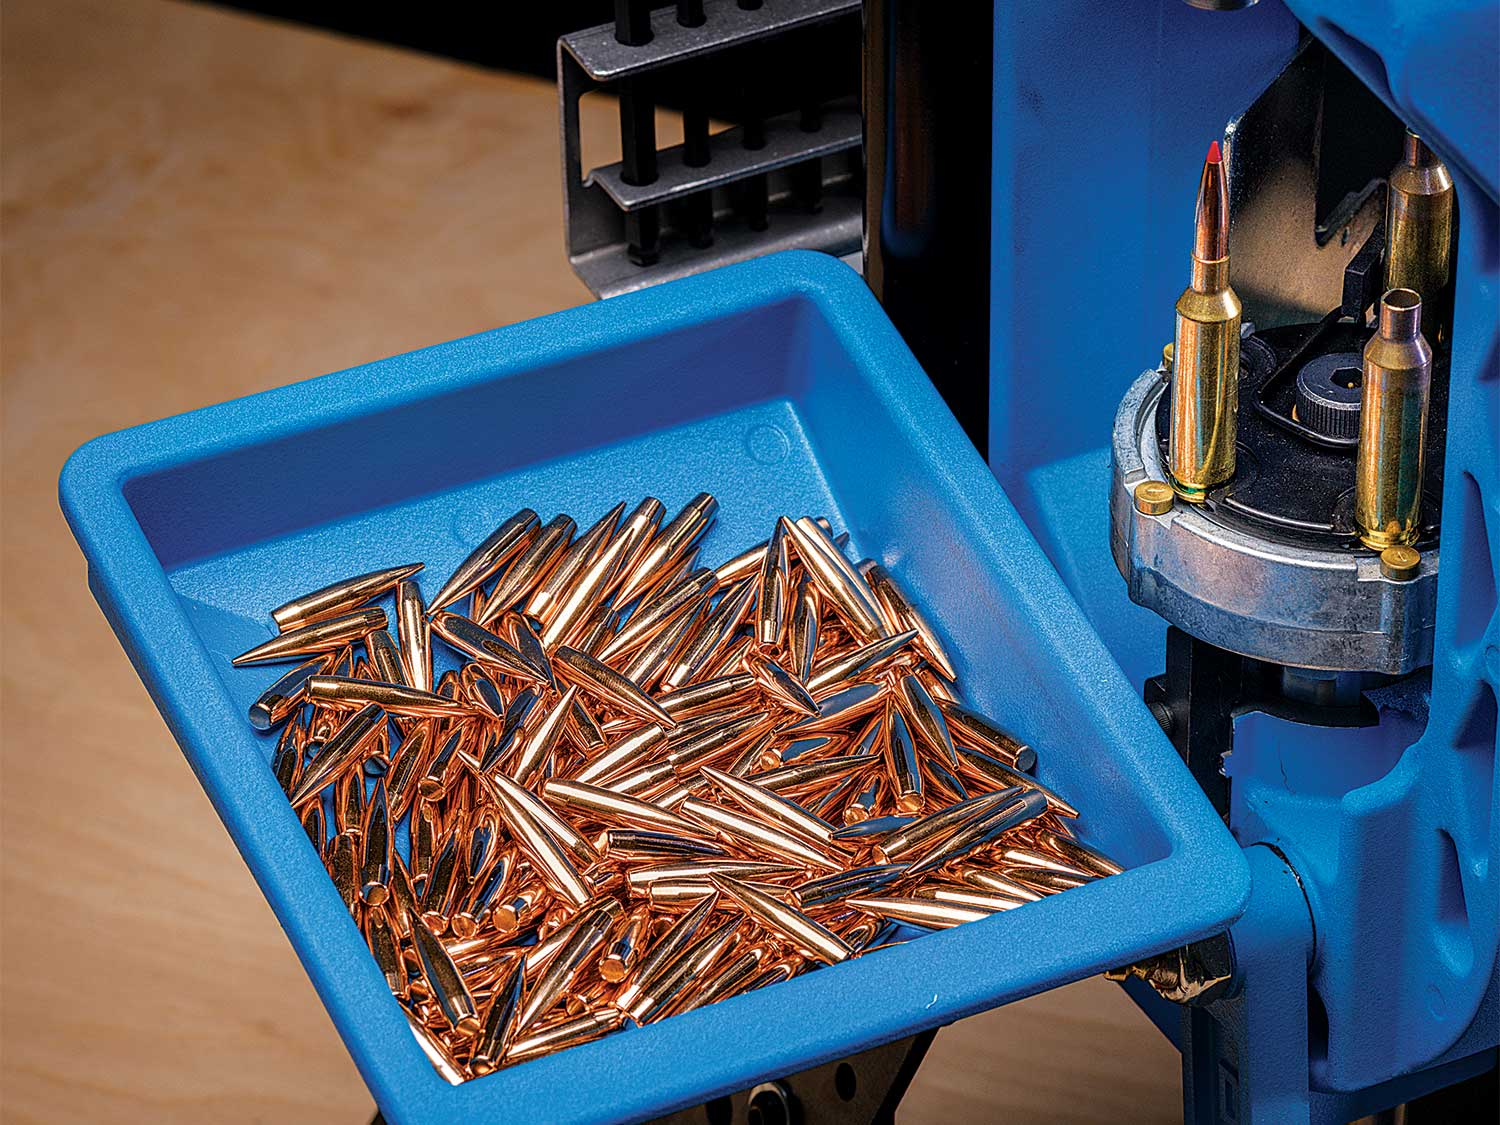 The Ultimate High-Speed Precision Reloading Setup | Outdoor Life